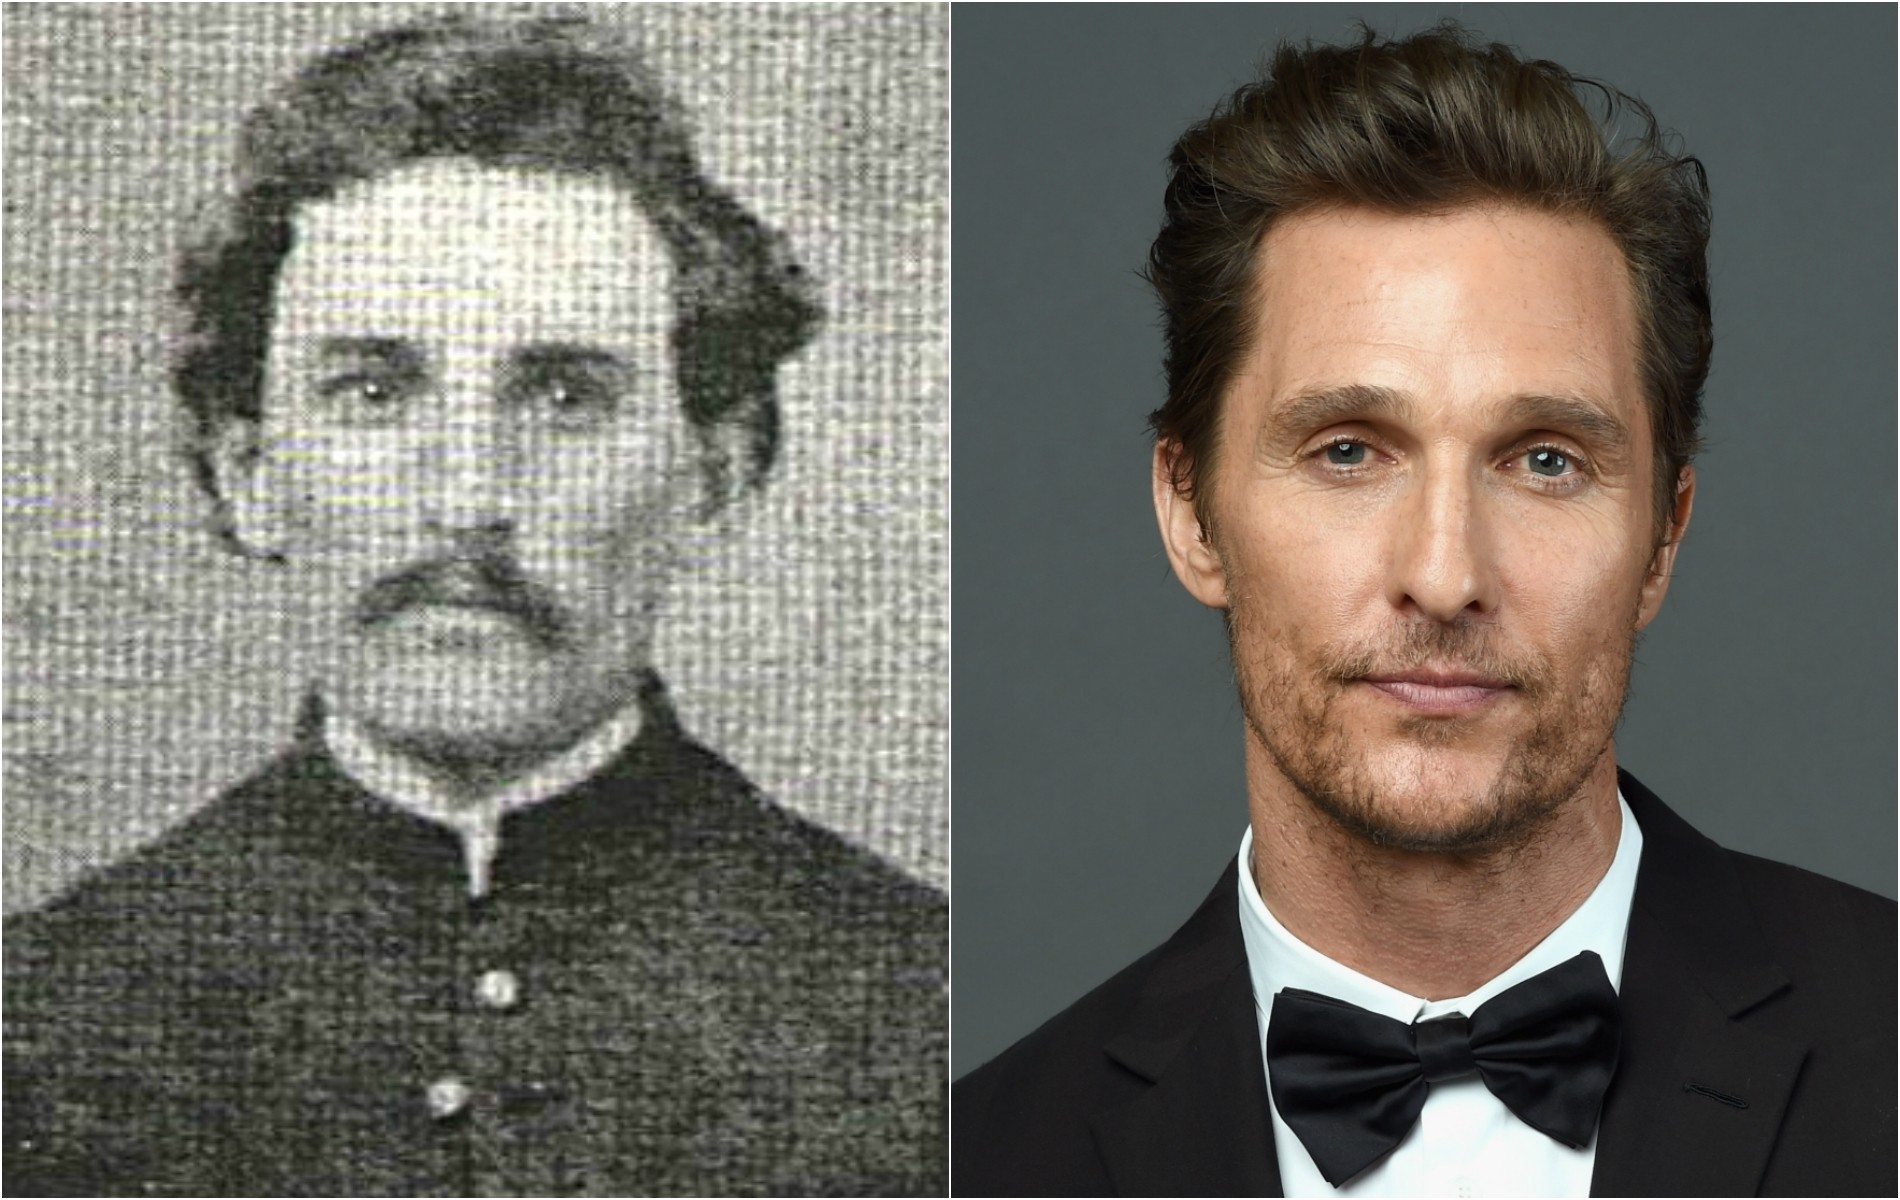 Matthew McConaughey e este anônimo que lutou na Guerra Civil Americana (1861-1865). (Foto: Library of Congress e Getty Images)